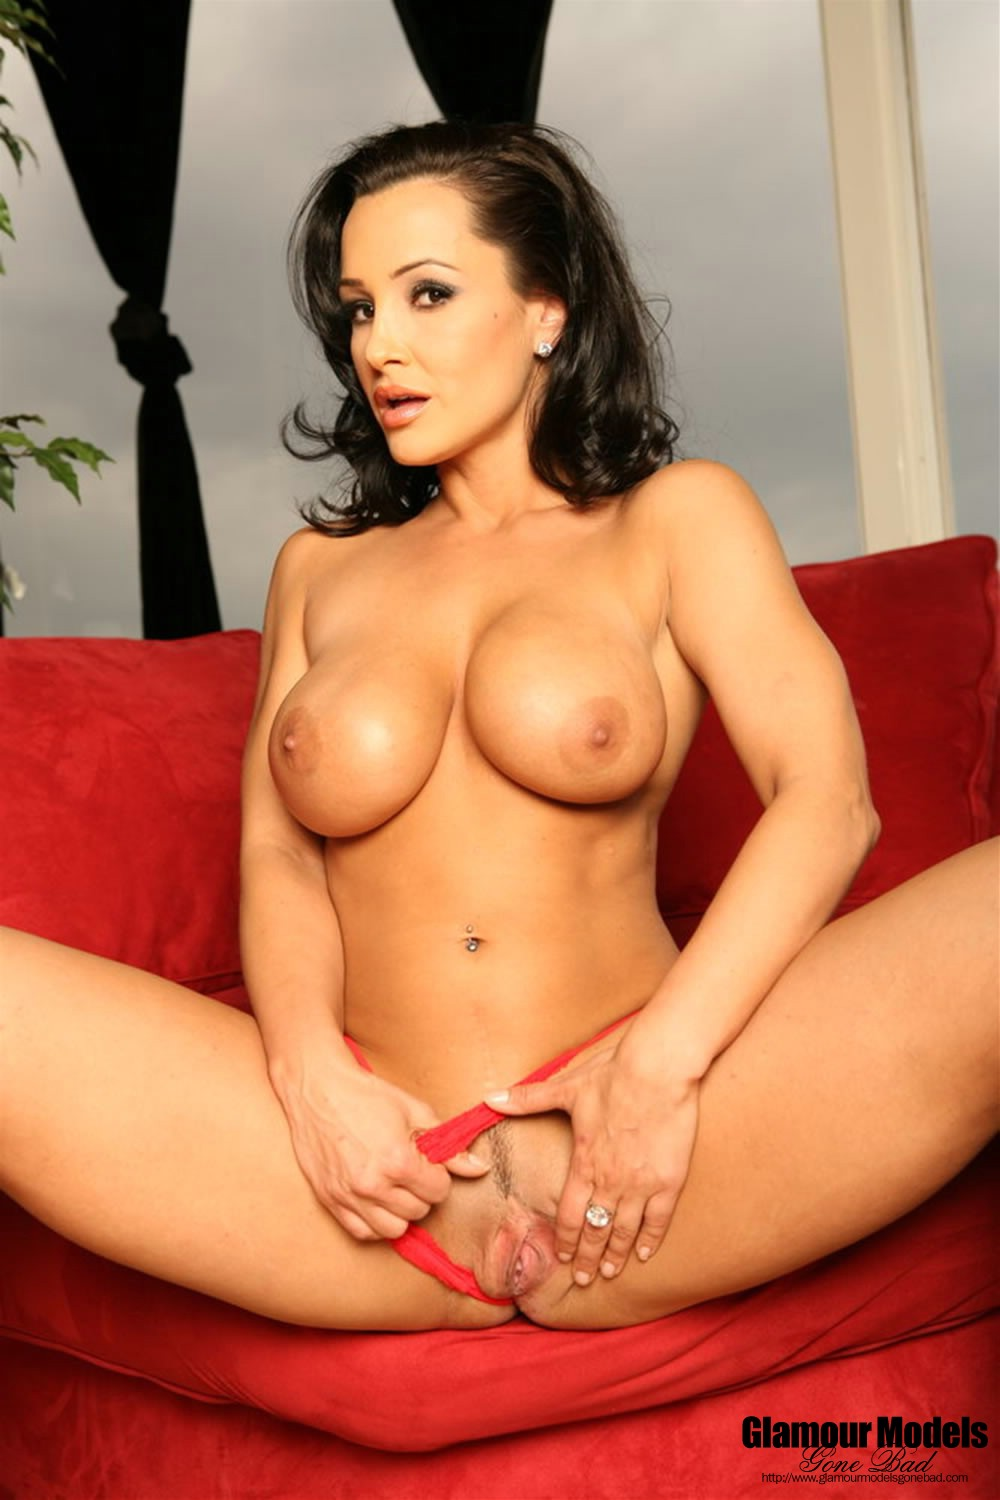 The talented Lisa ann walker naked nude accept